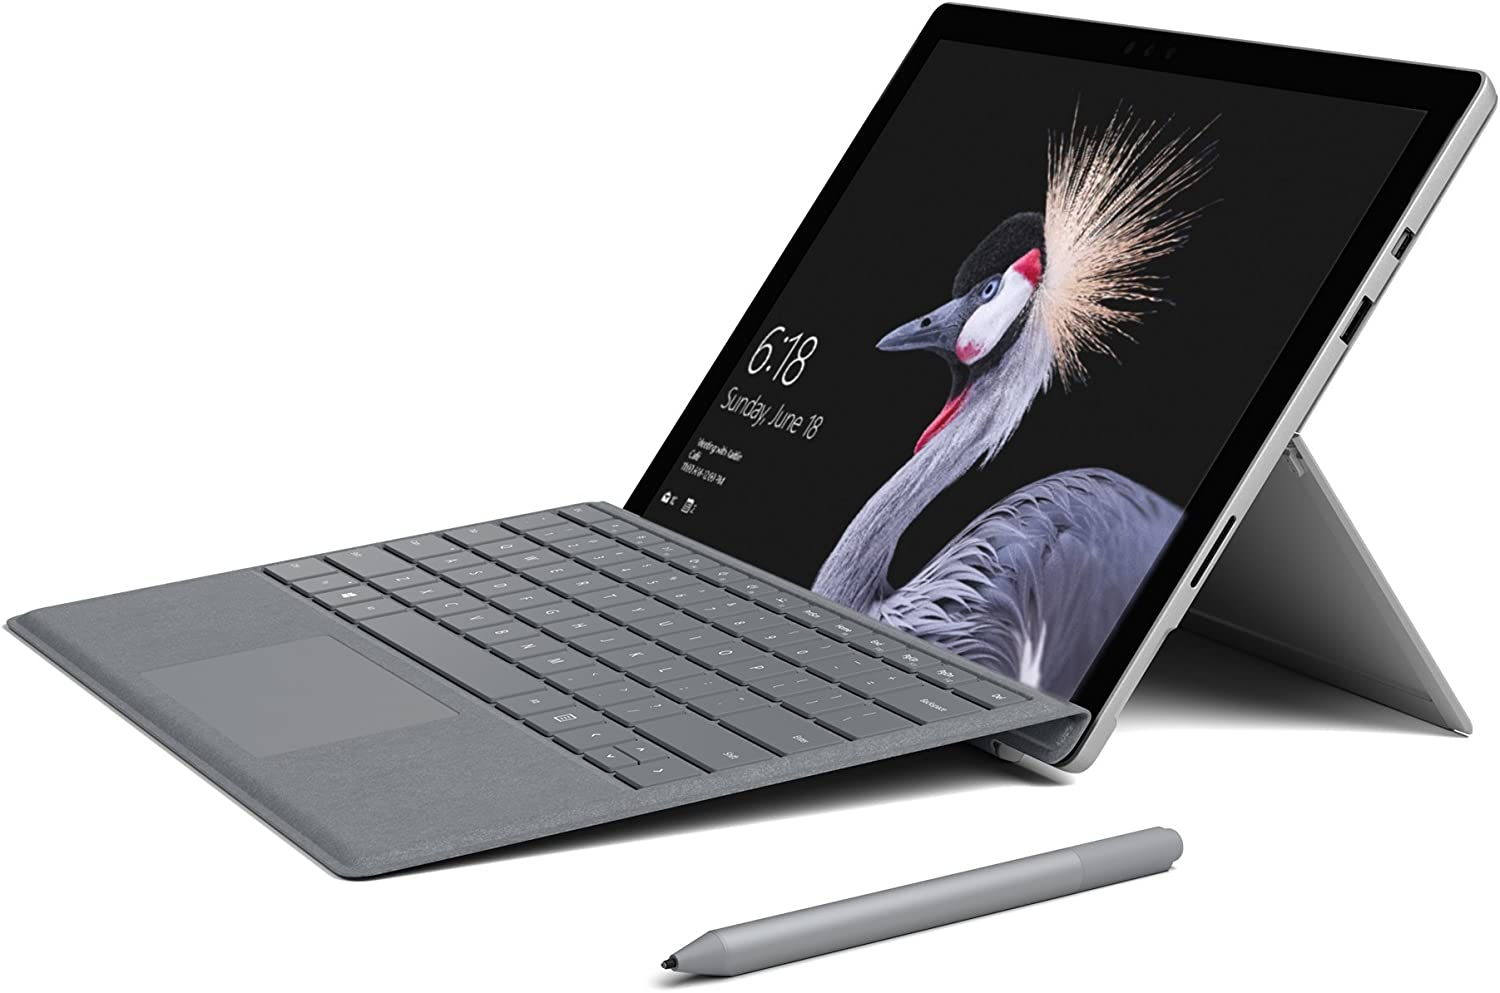 2020 Microsoft Surface Pen for Surface Pro 7 Pro X Surface Laptop 3 Surface Book 2 Laptop 2 Surface Go Studio 2 4096 Pressure Points Rubber Eraser Bluetooth Poppy Red w//3 Extra Surface Pen Tips HB